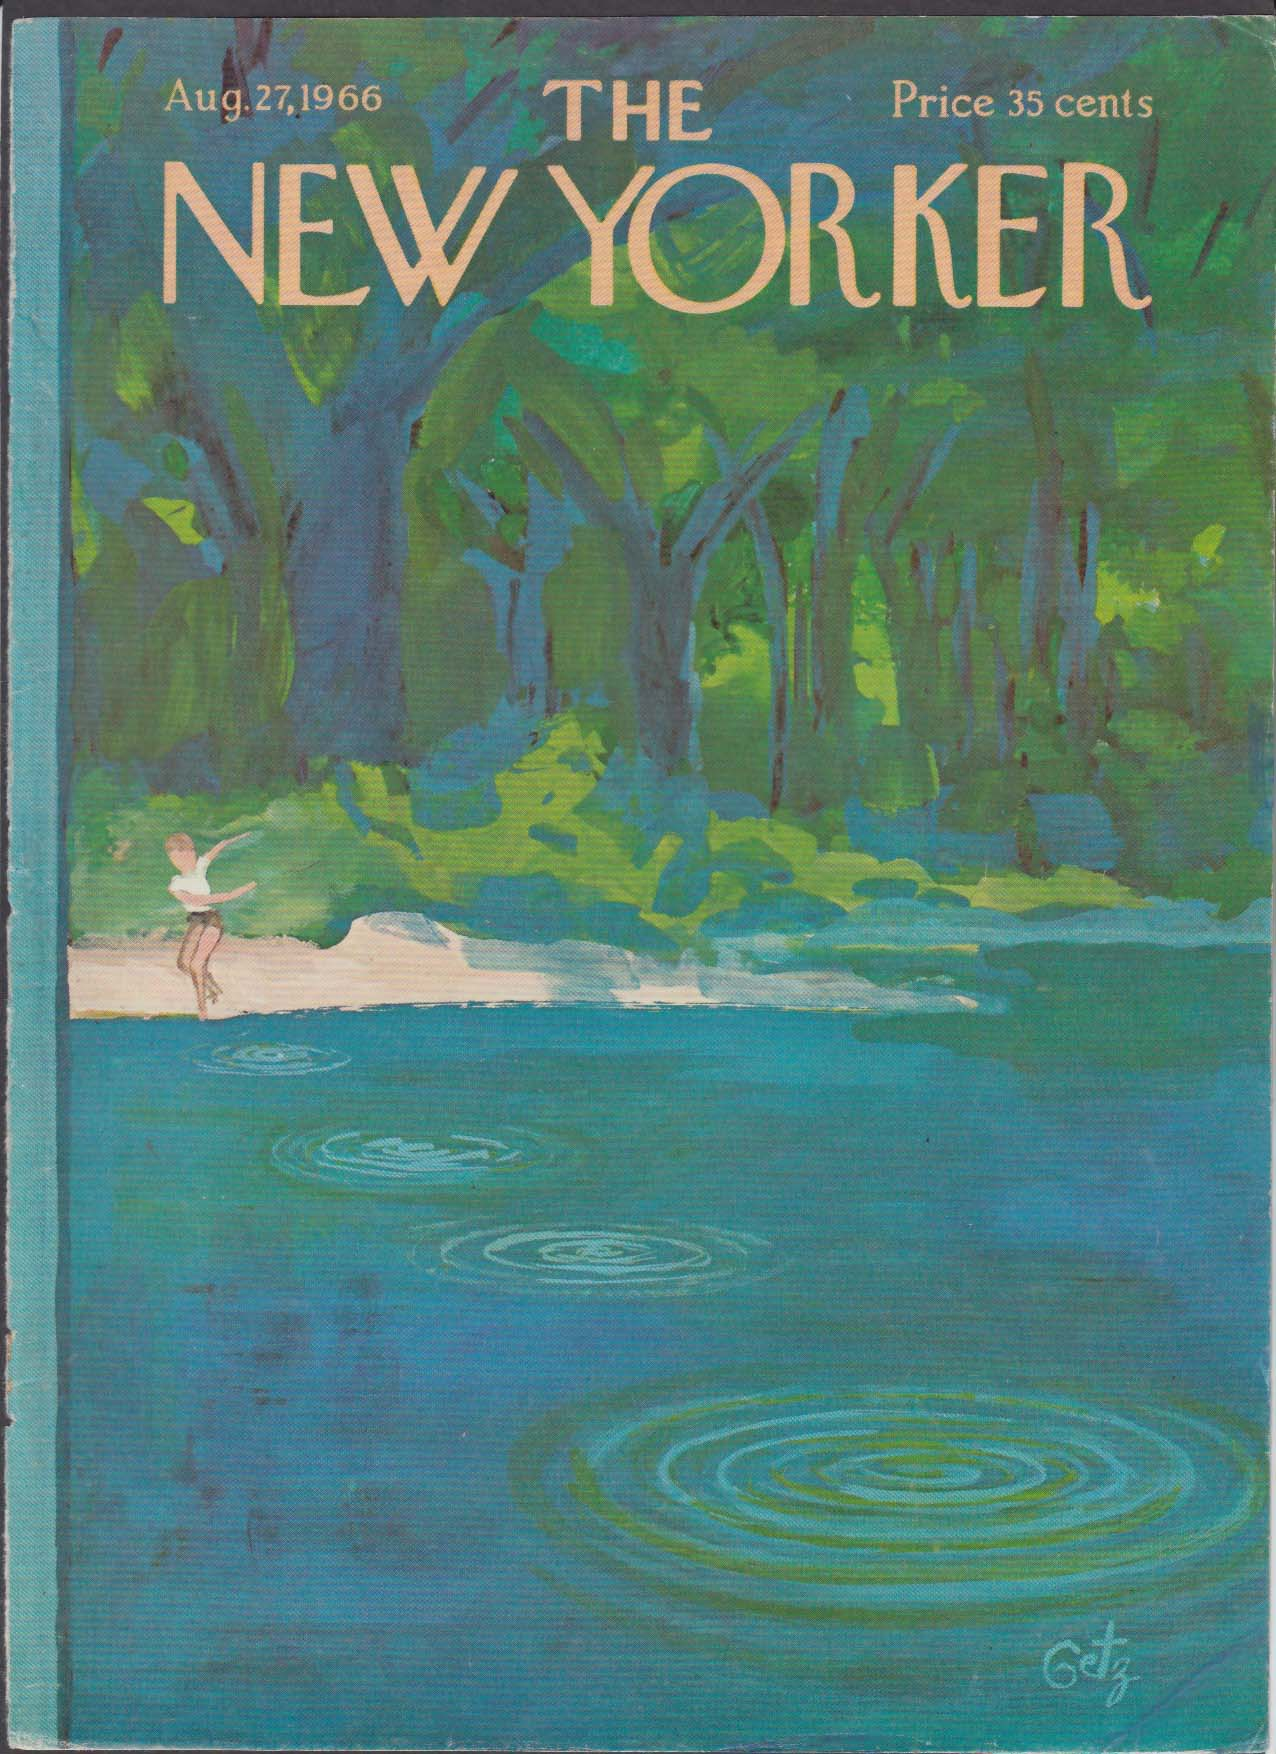 New Yorker cover Getz child skipping a rock on pond in woods 8/27 1966